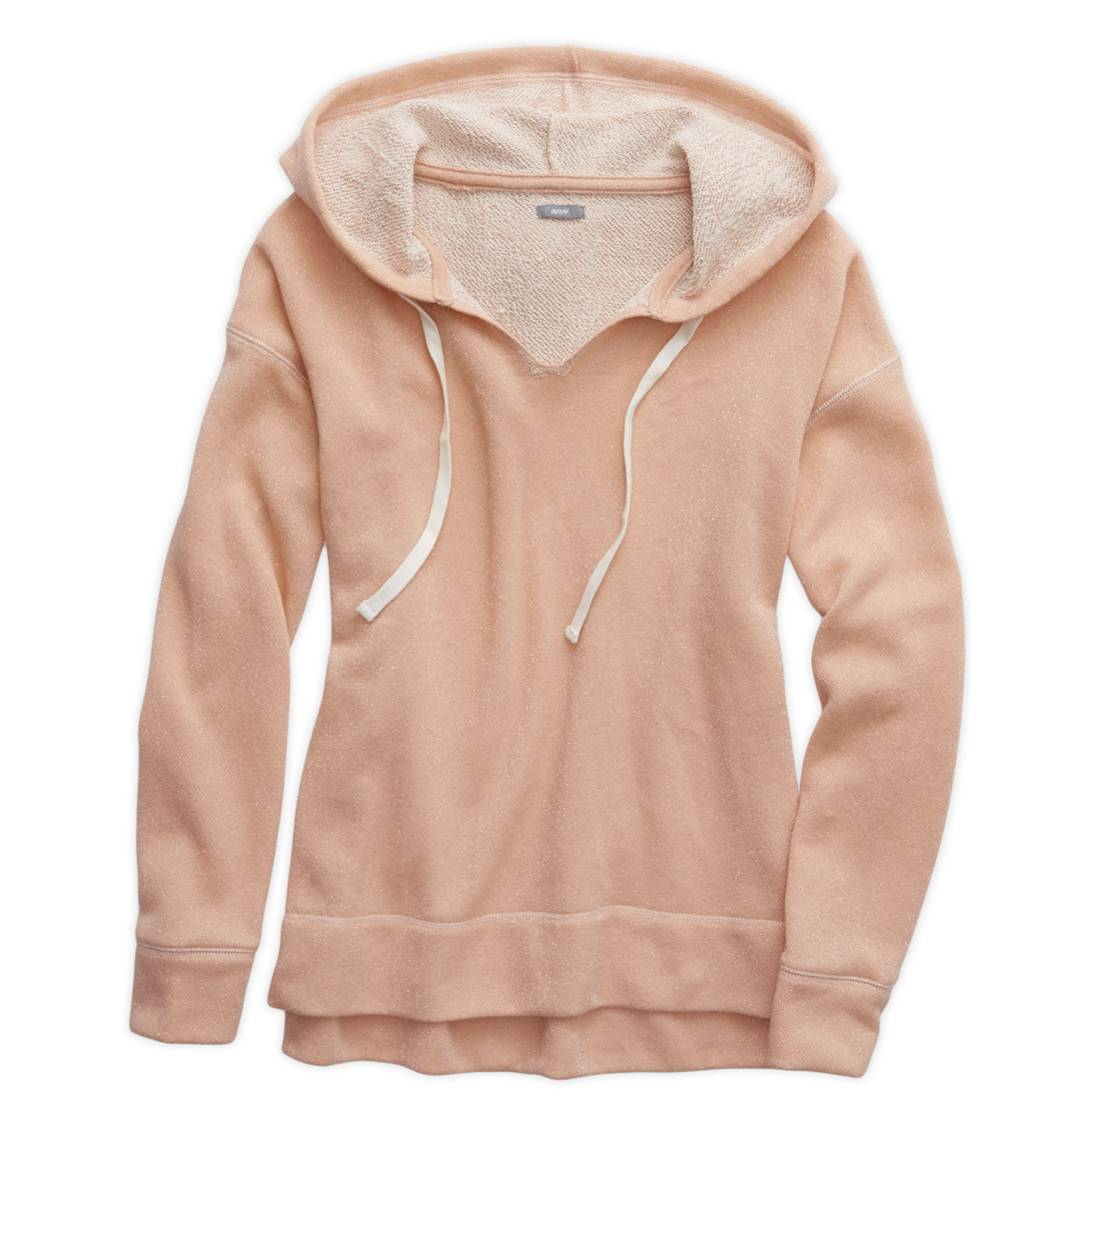 Macaroon Aerie Sparkle Hooded Sweatshirt